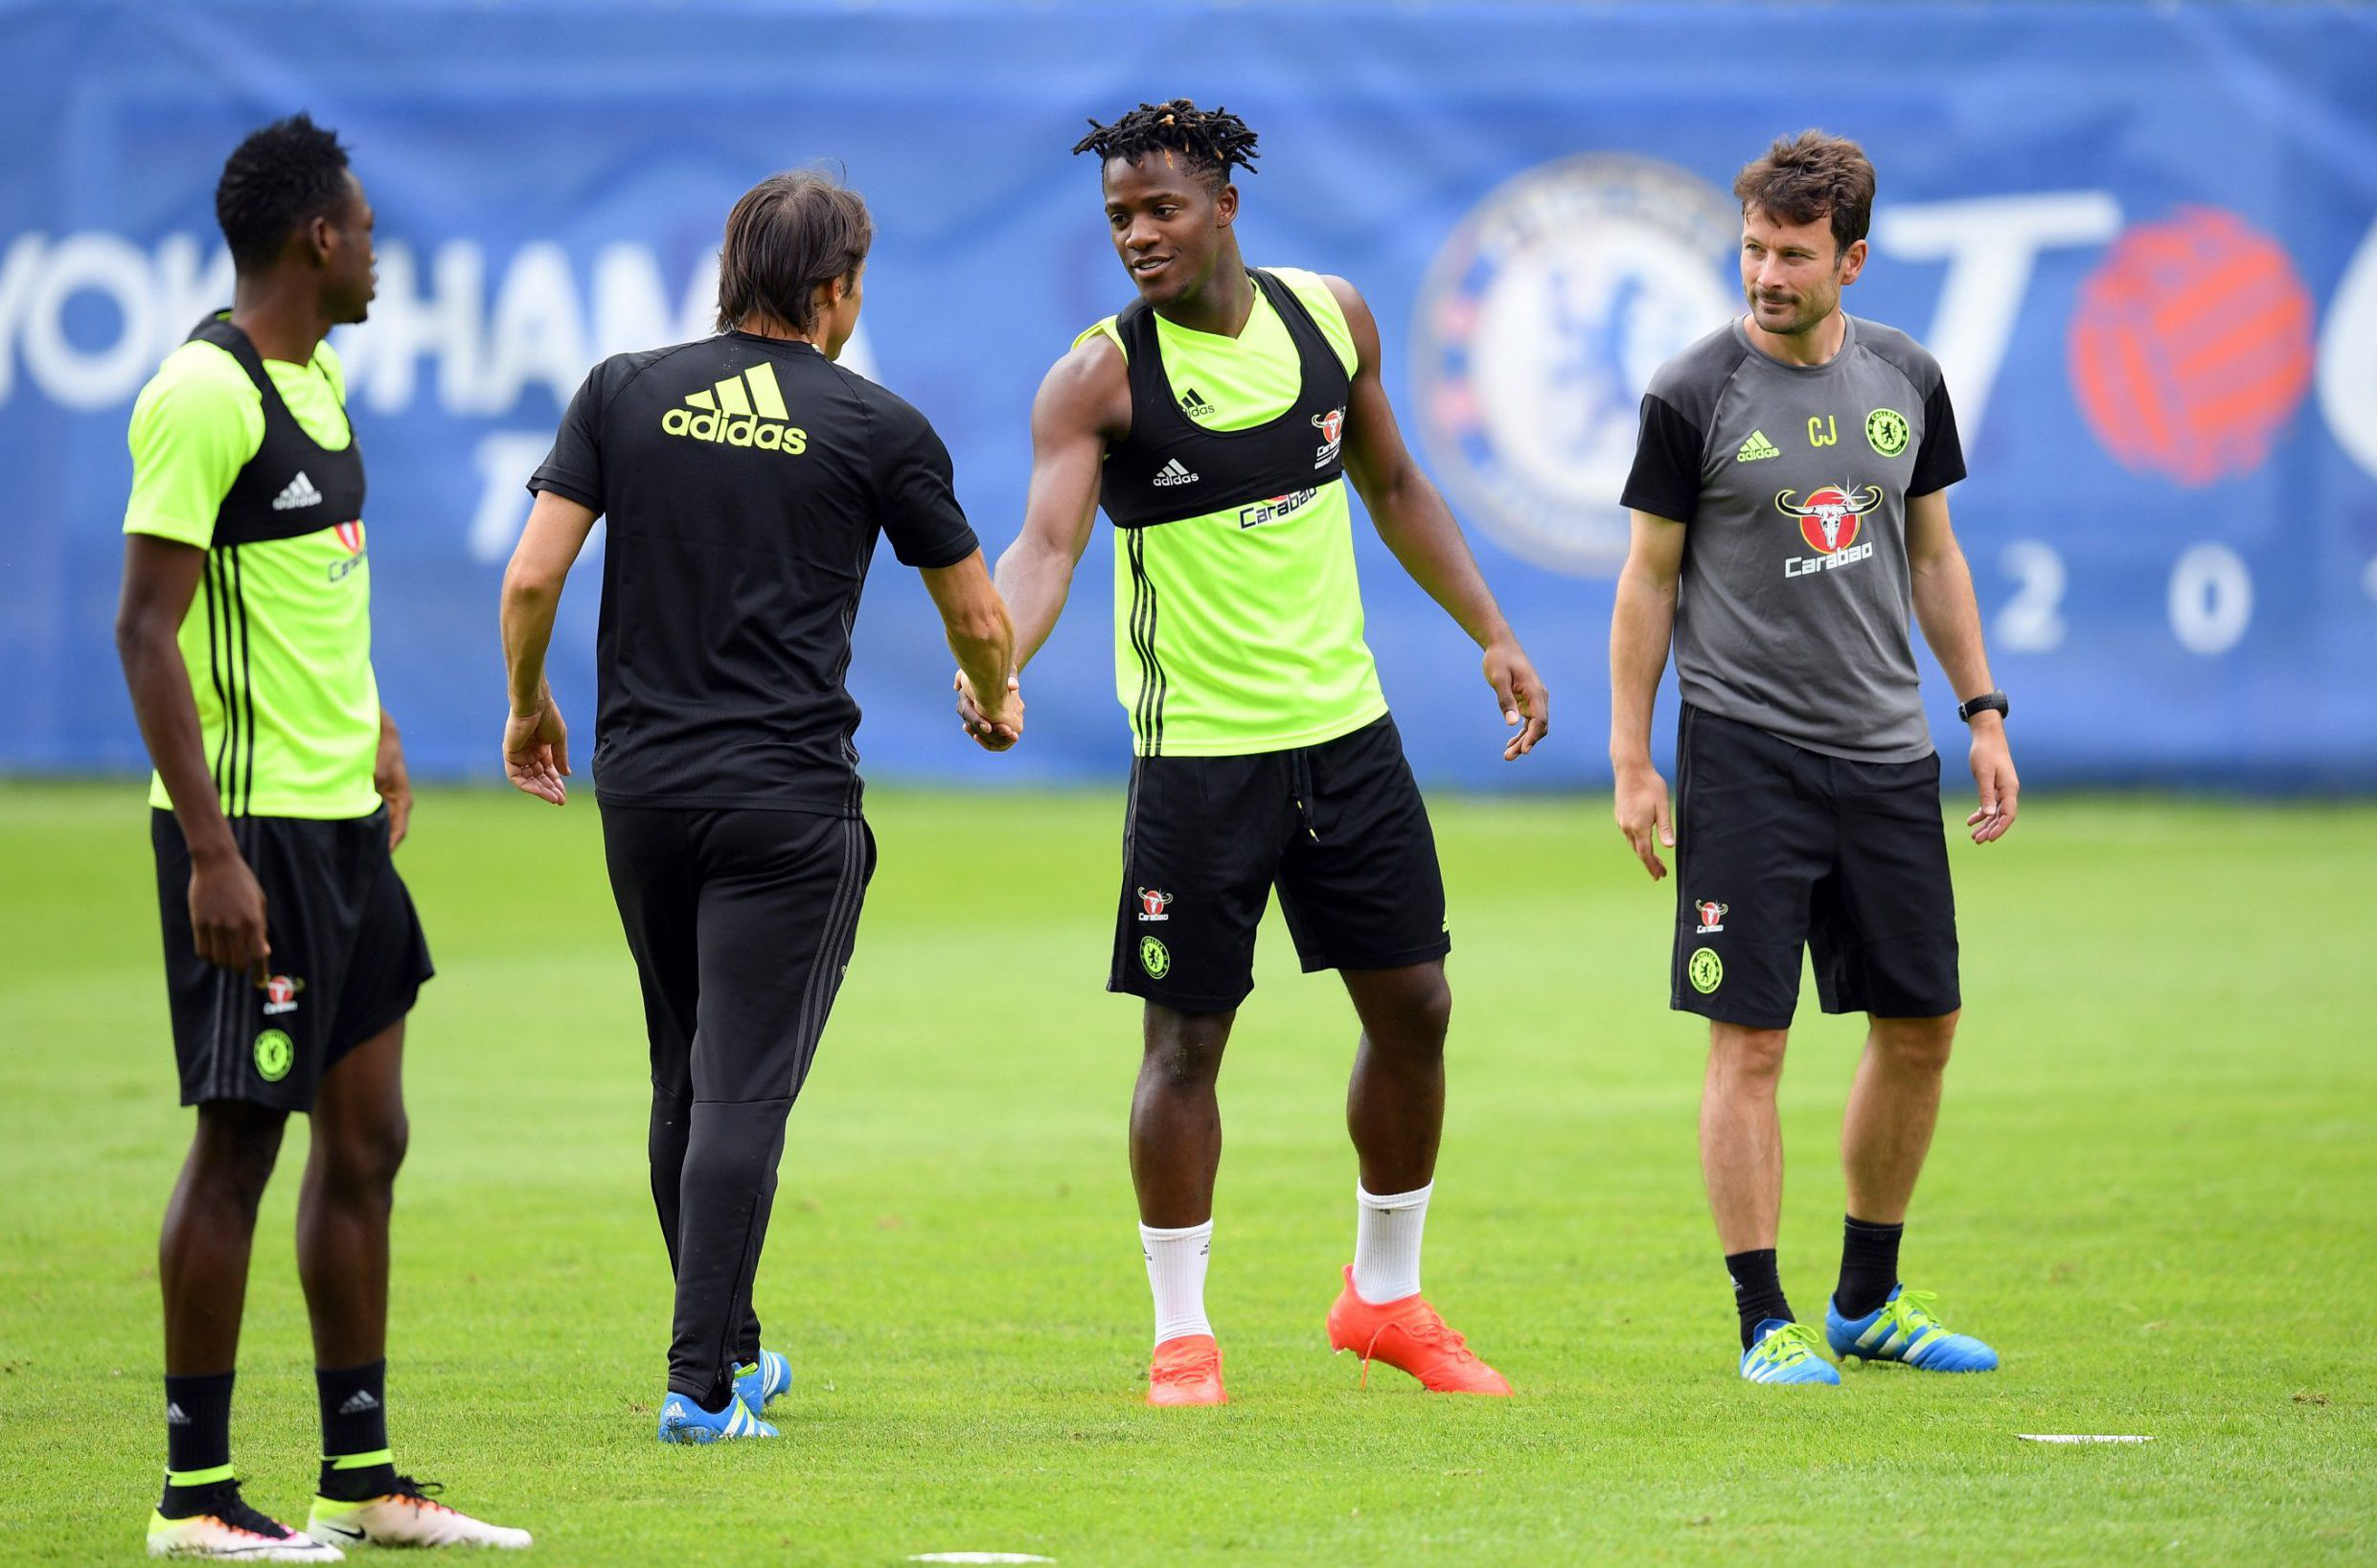 VELDEN, AUSTRIA - JULY 18: Michy Batshuayi, Antonio Conte during a Chelsea training session at Waldarena on July 18, 2016 in Velden, Austria. (Photo by Darren Walsh/Chelsea FC via Getty Images)